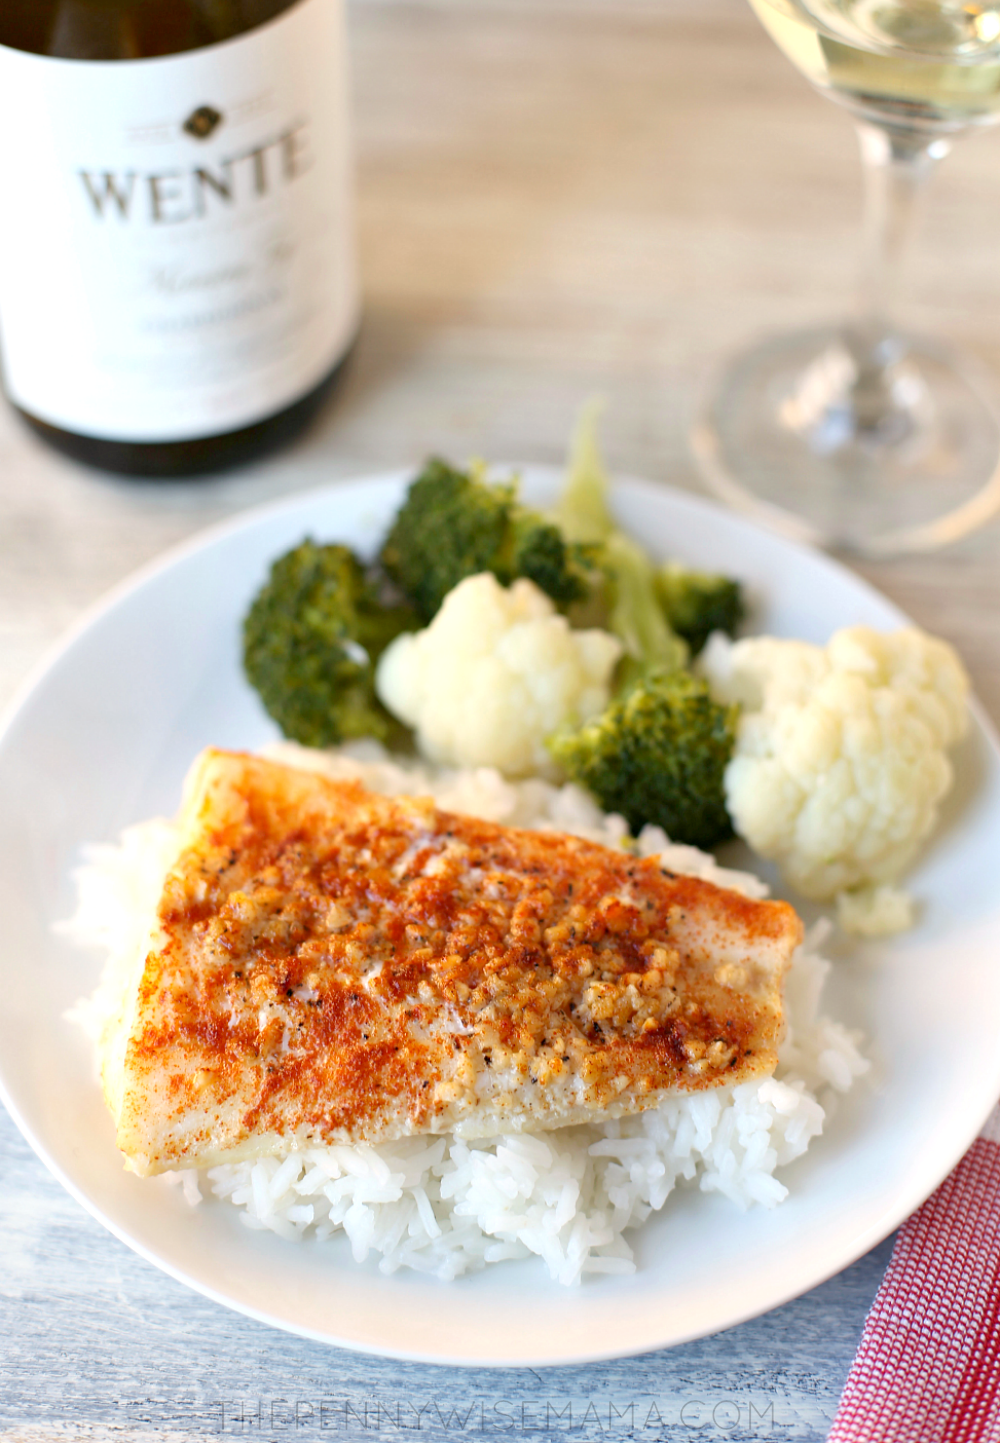 Lemon Garlic Baked Cod - Delicious, easy meal for busy nights!